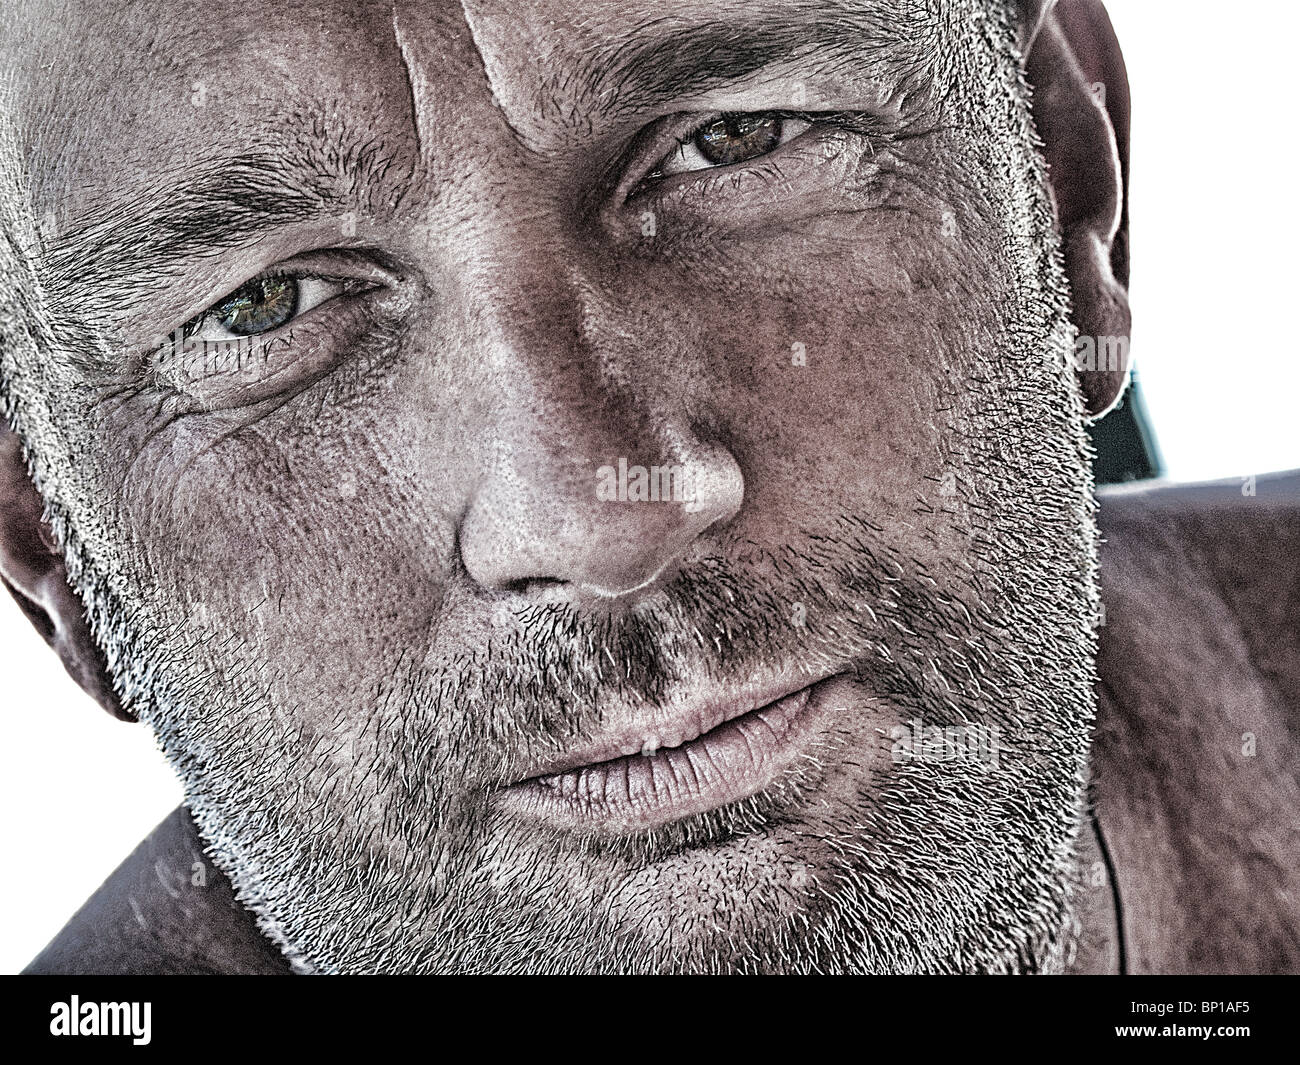 Portrait of man with craggy face - Stock Image